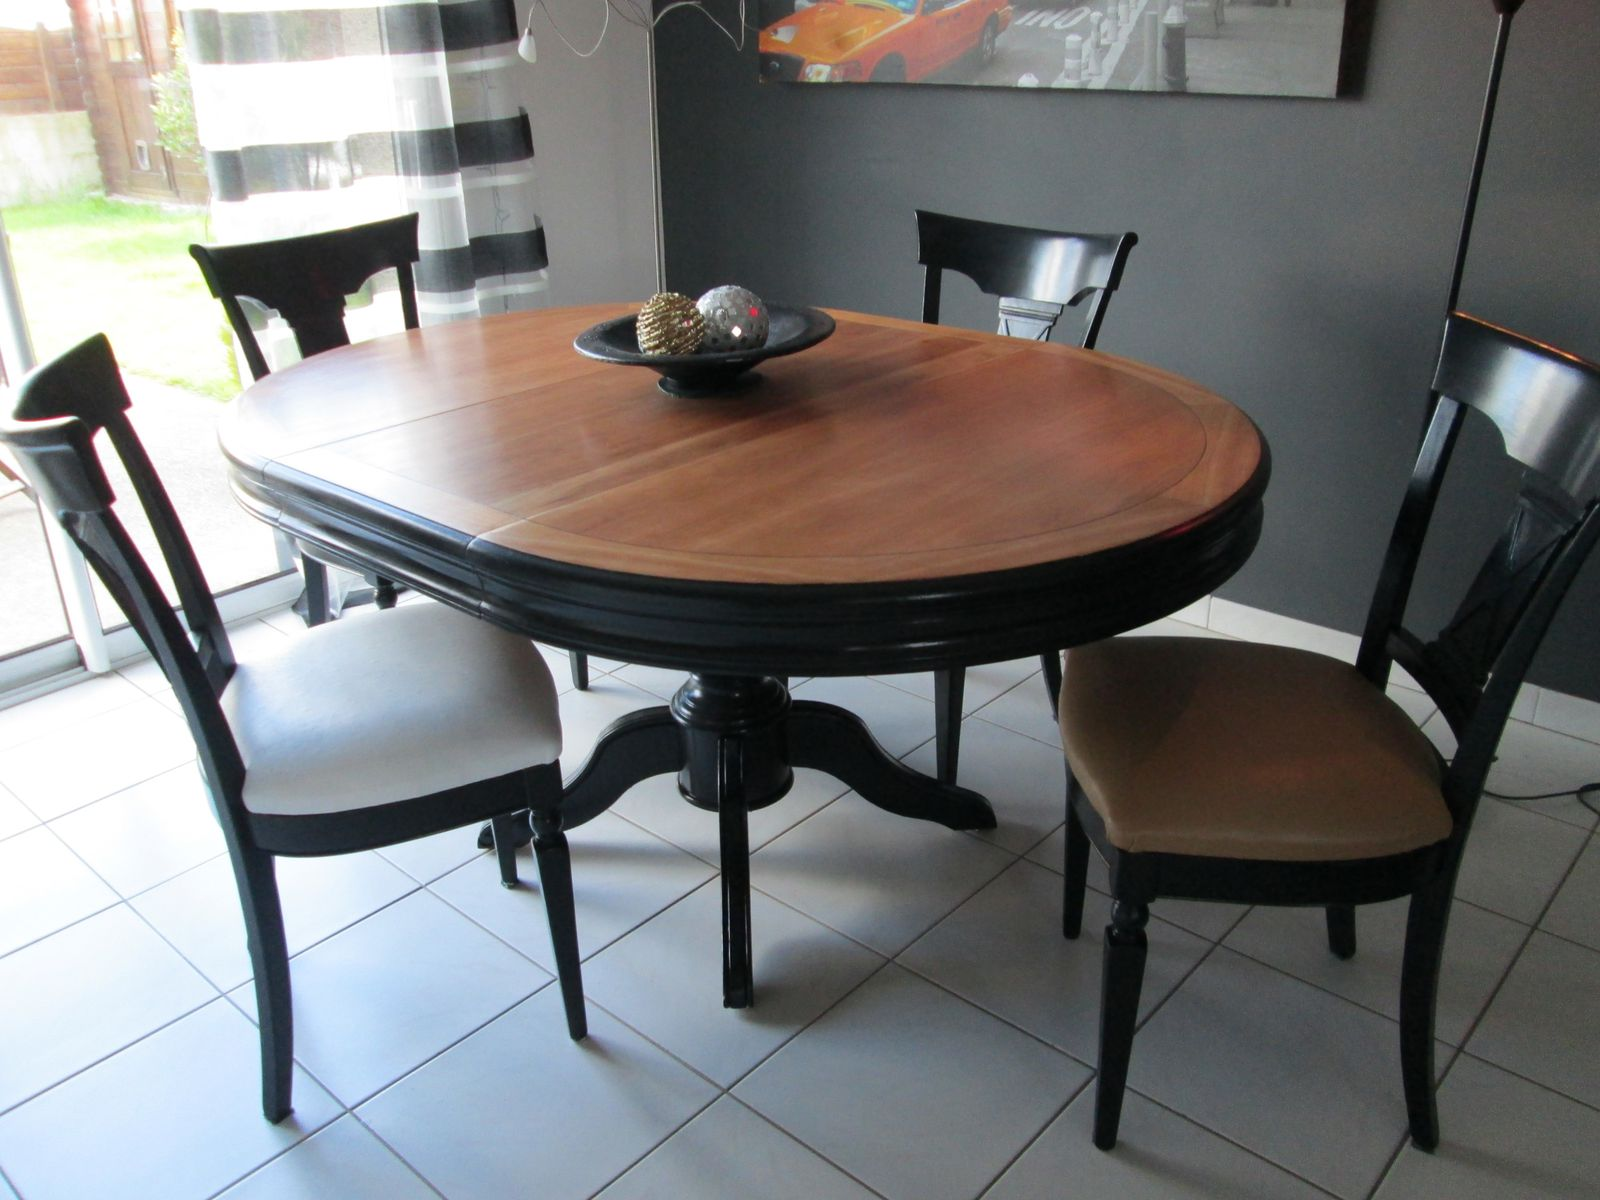 relooking d 39 une table louis philippe et chaises coco. Black Bedroom Furniture Sets. Home Design Ideas